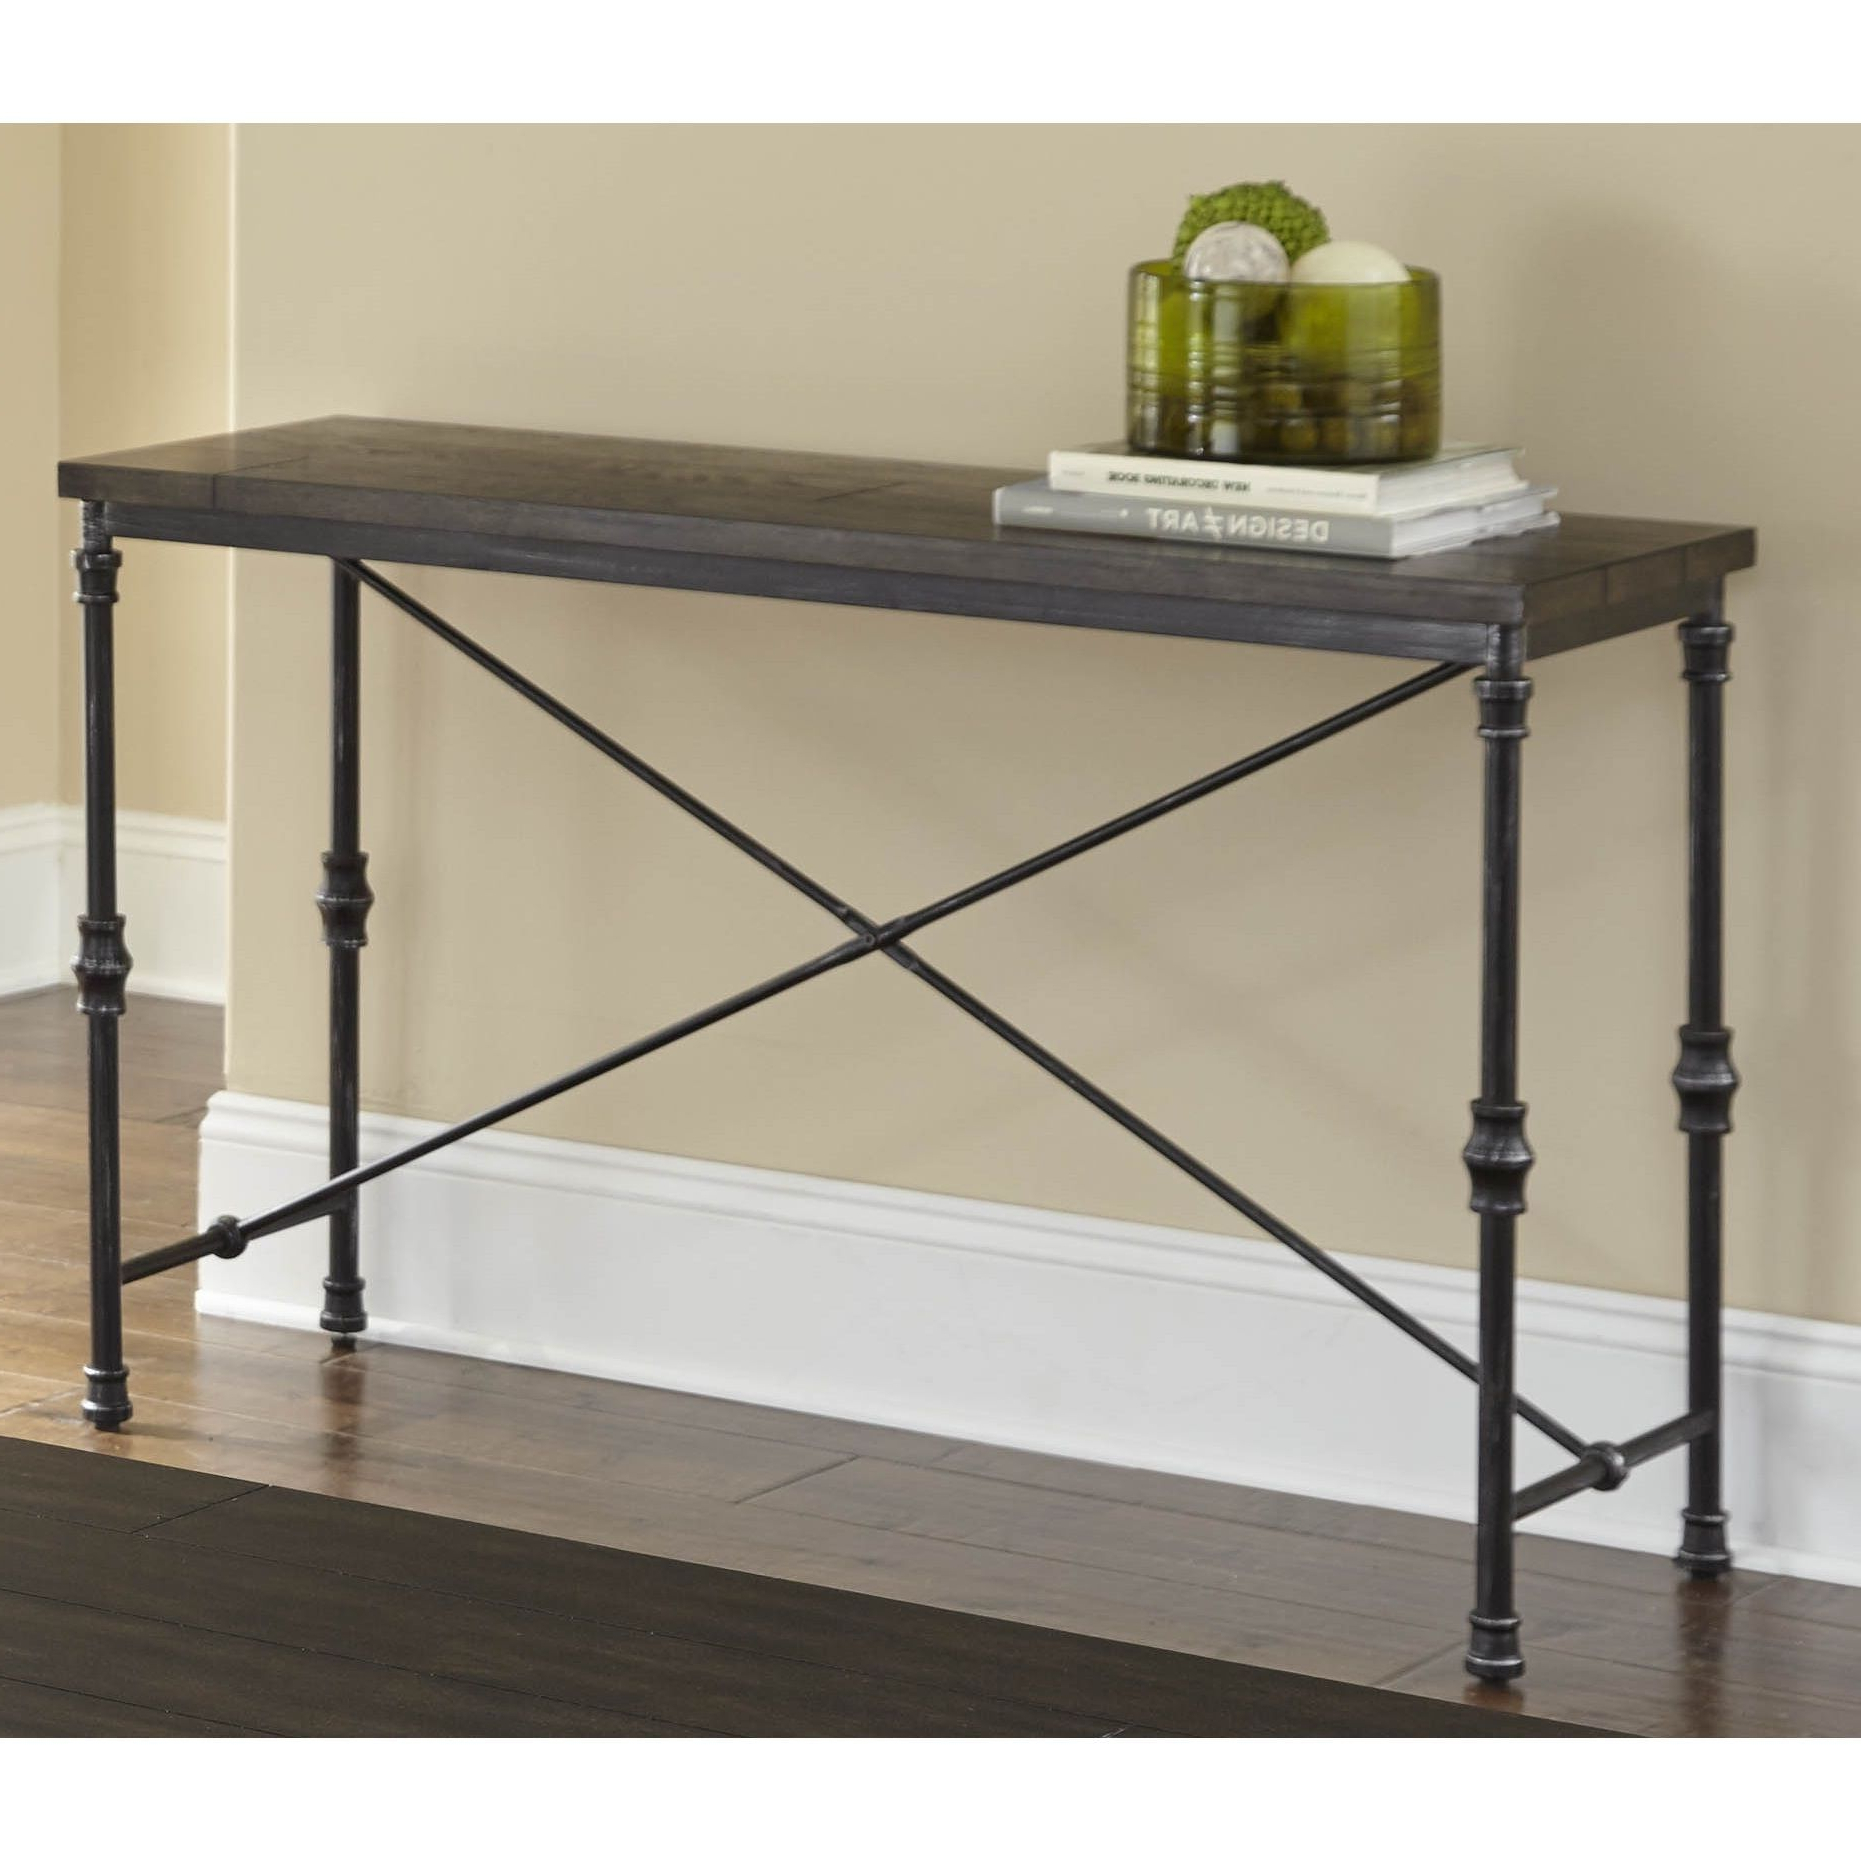 Greyson Living Loring Sofa Table, Grey | Home Decorating | Pinterest For Yukon Grey Console Tables (View 5 of 20)